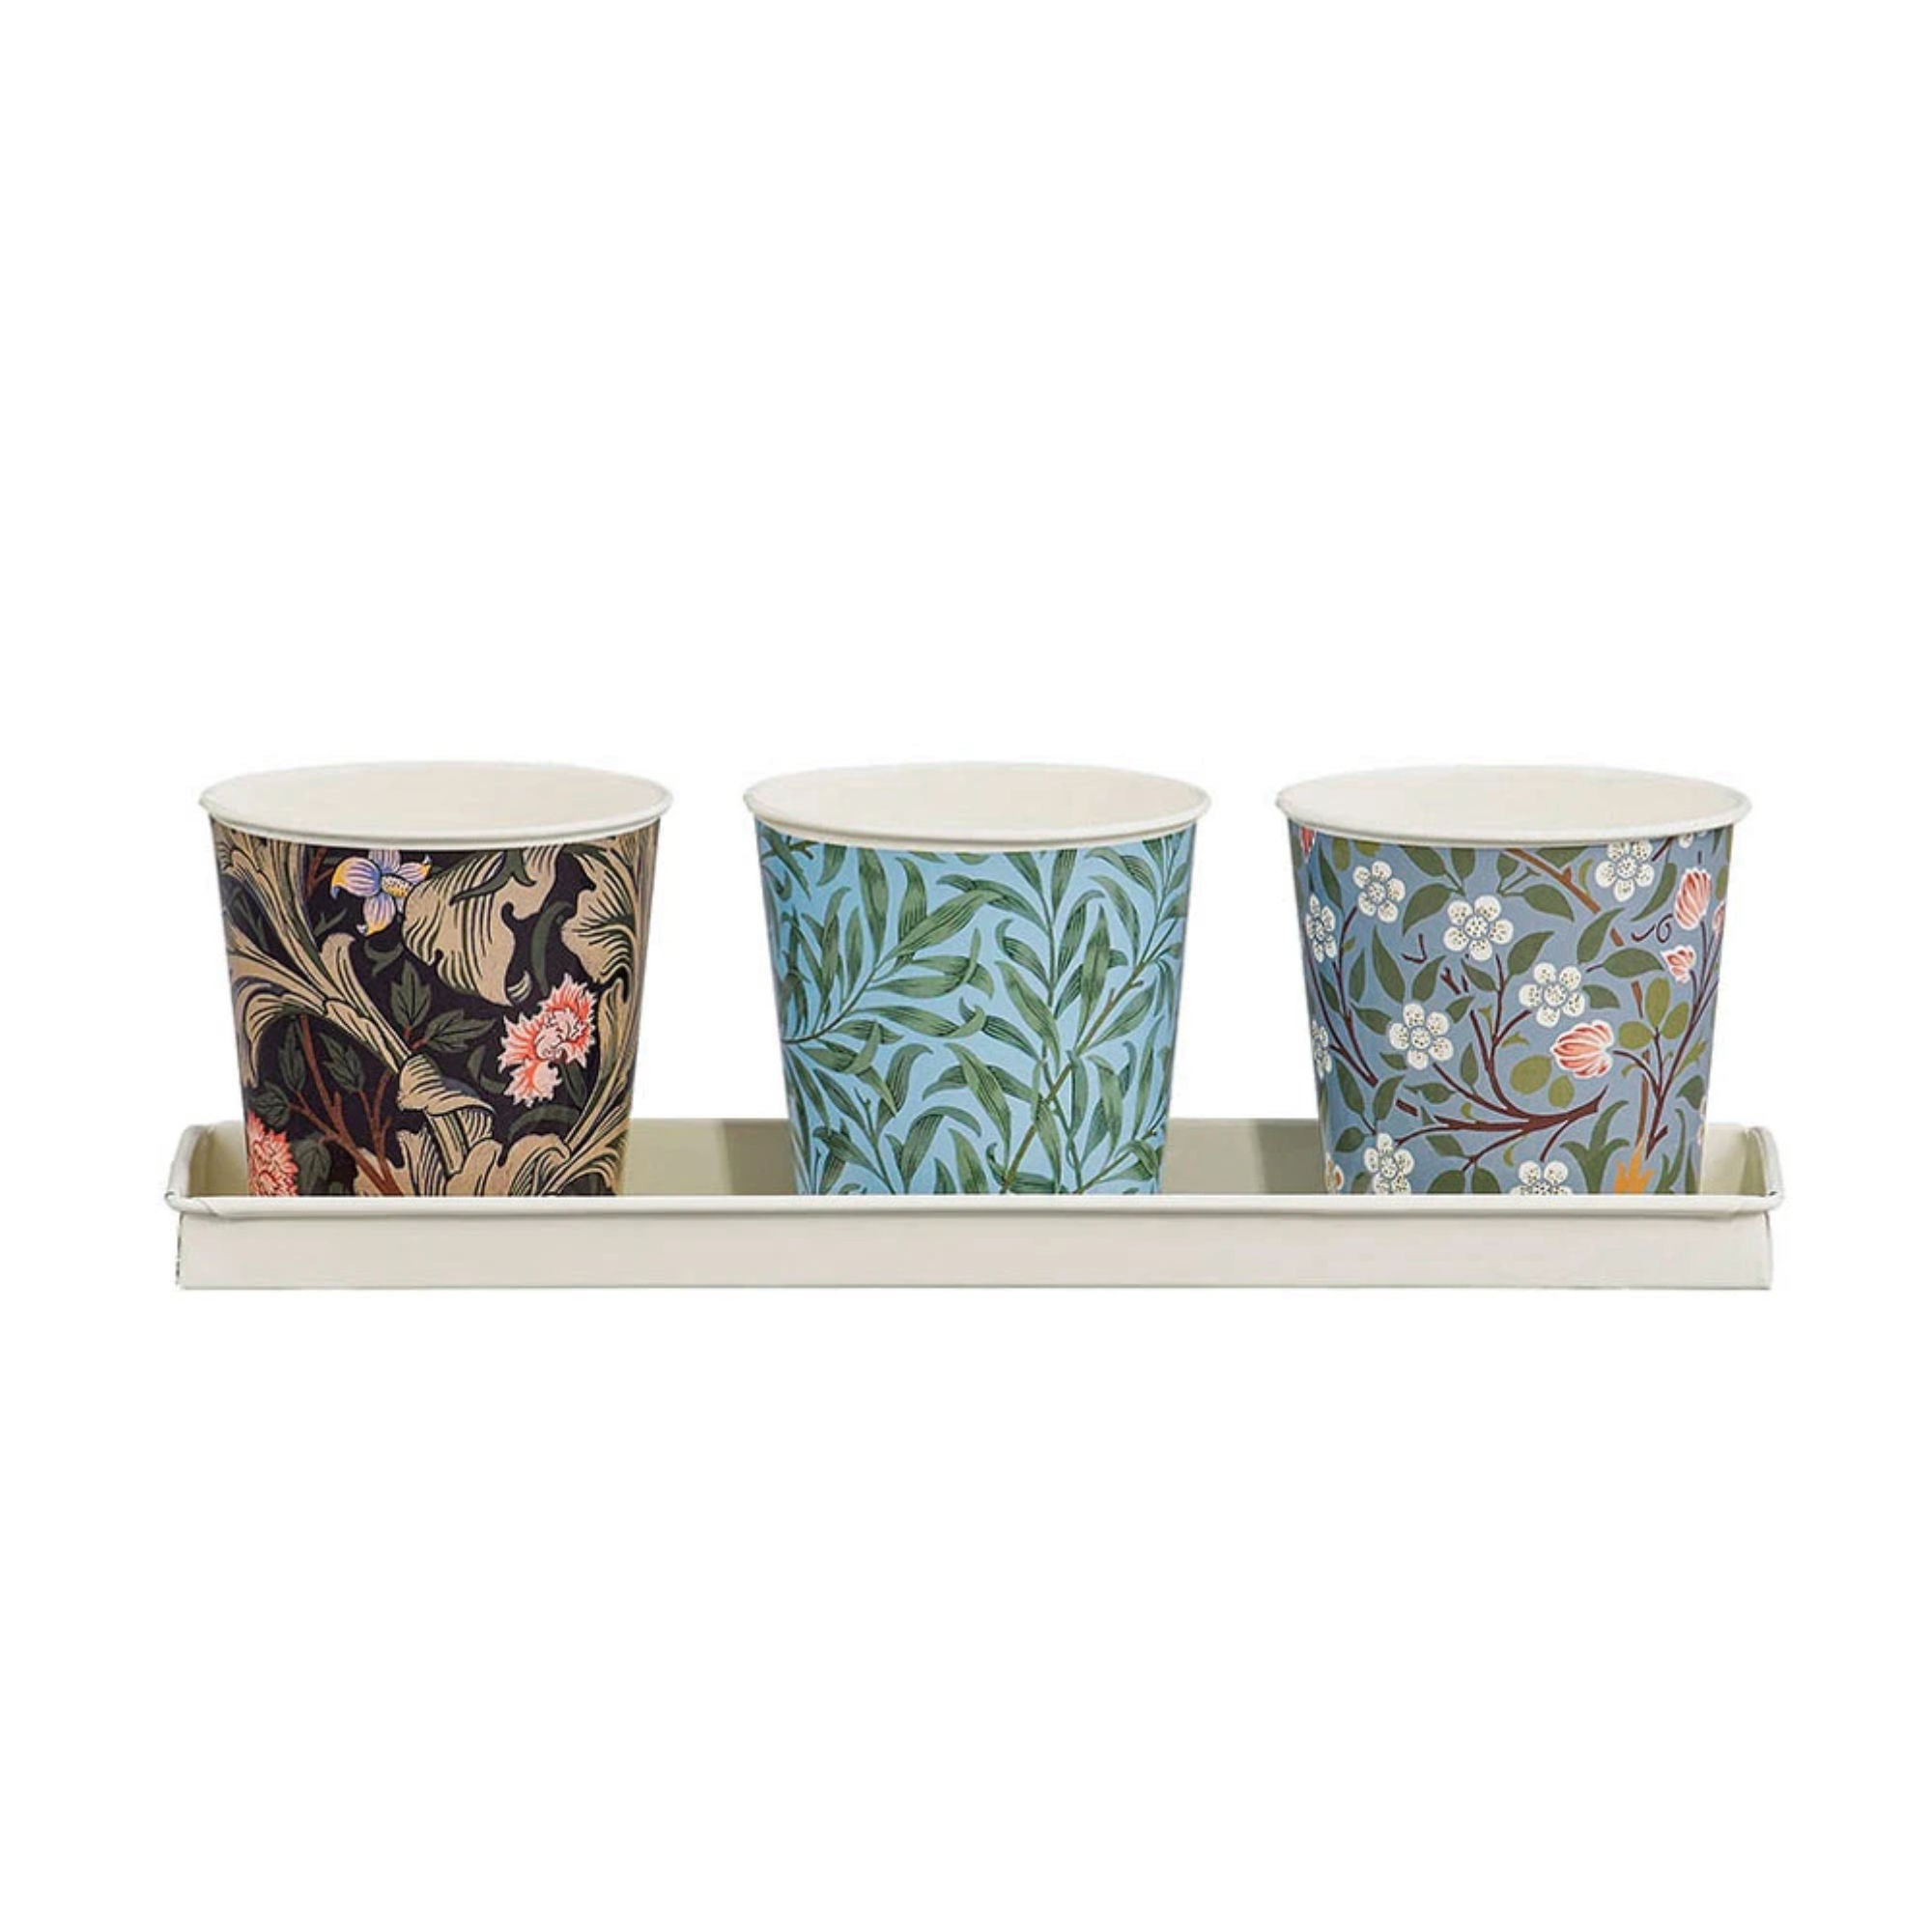 V&A William Morris Plant Pots Set of 3